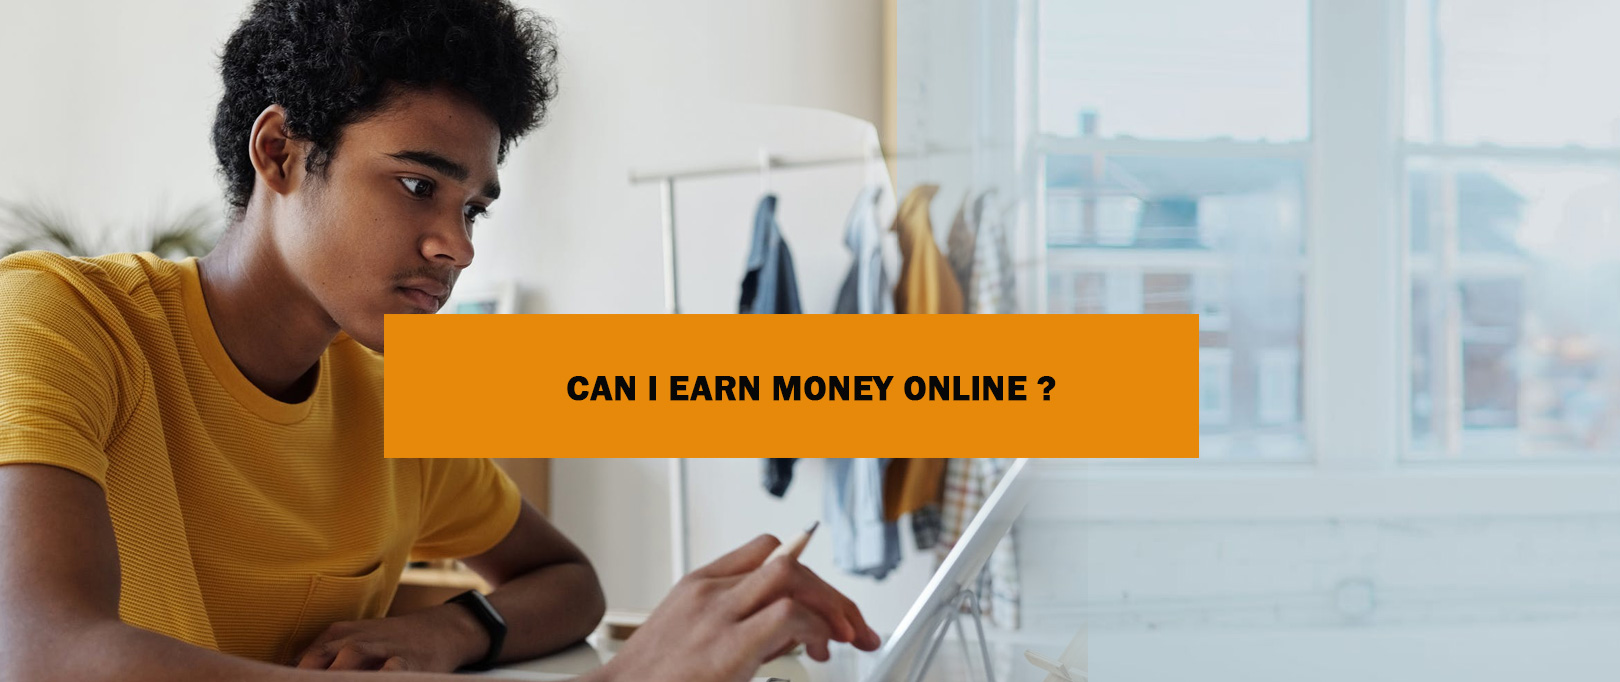 earn-money-online-tips-in-sri-lanka